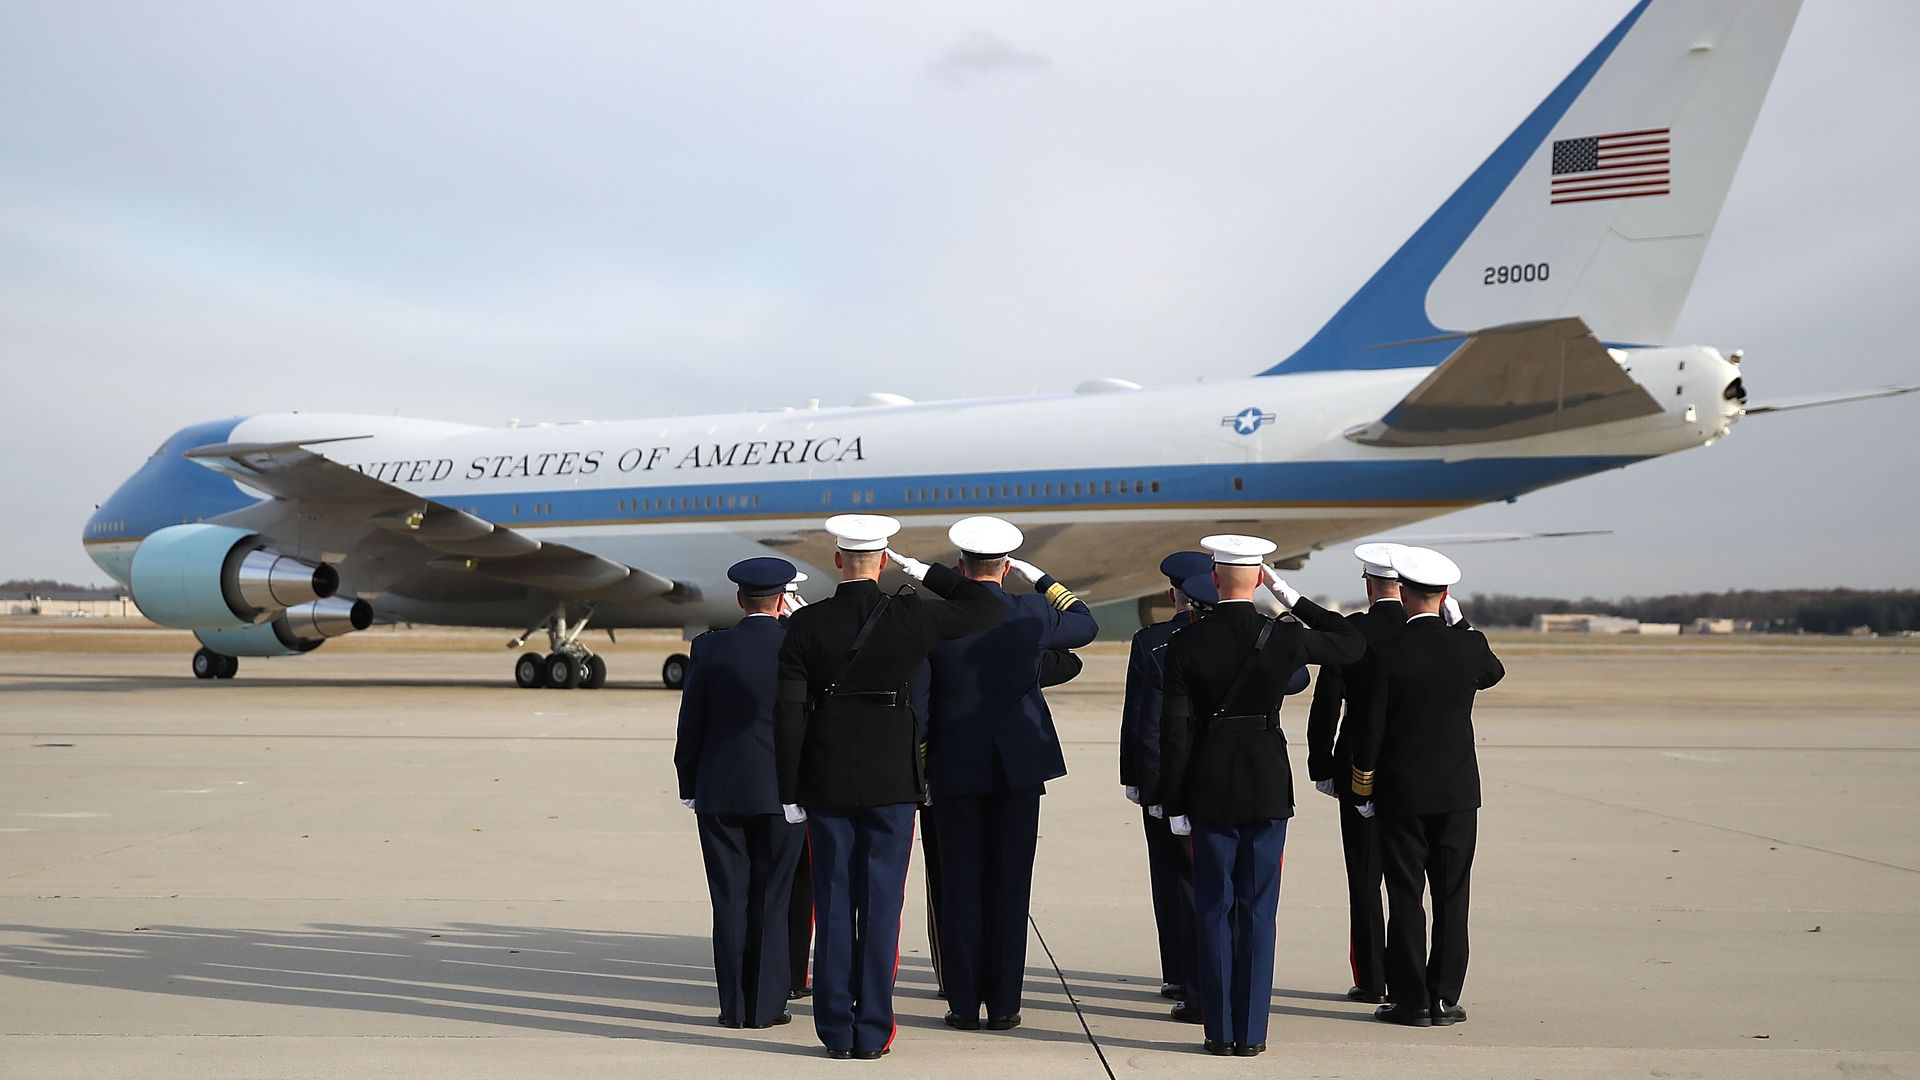 Troops salute Air Force One with George H. W. Bush casket on it.